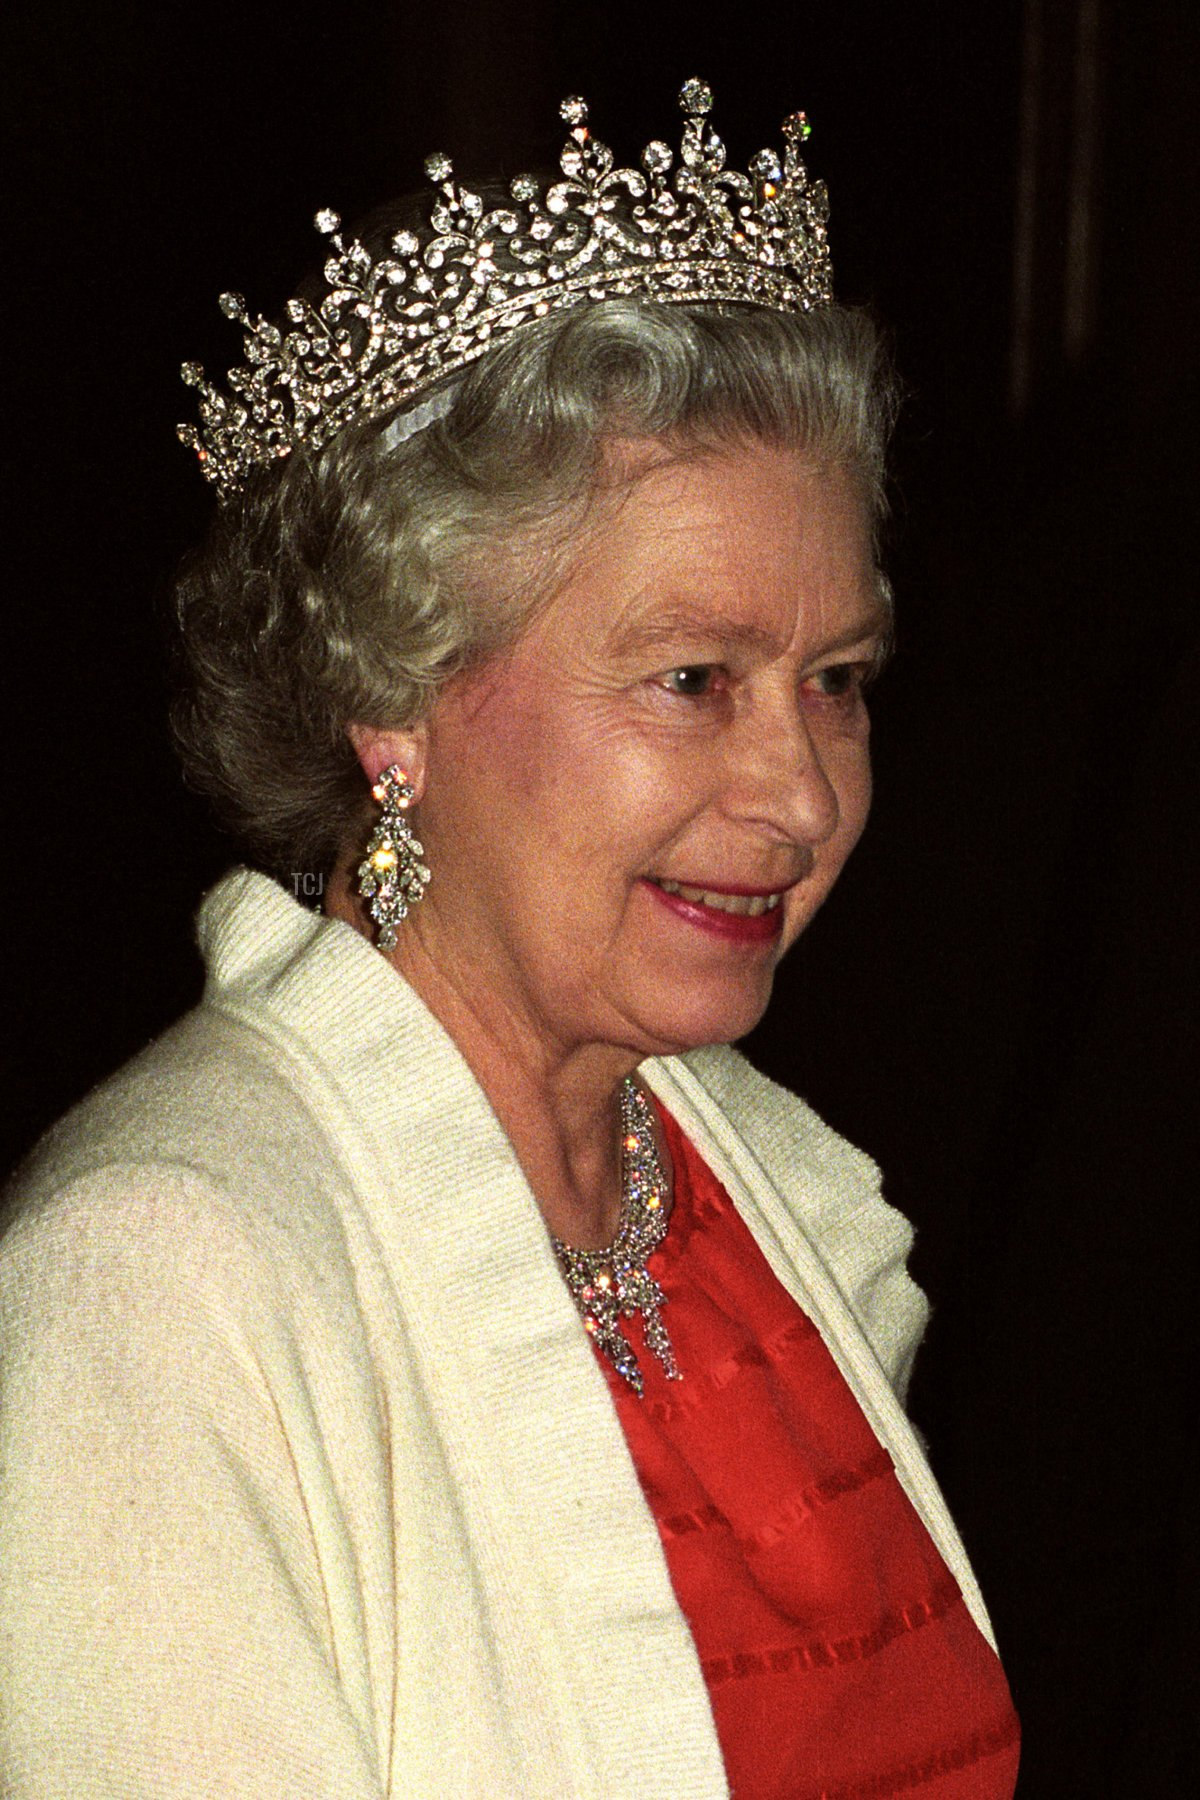 The Queen as she arrives at the National Theatre in Prague for a music concert, on the 2nd day of her stay in the Czech Republic, 28 Mar 1996